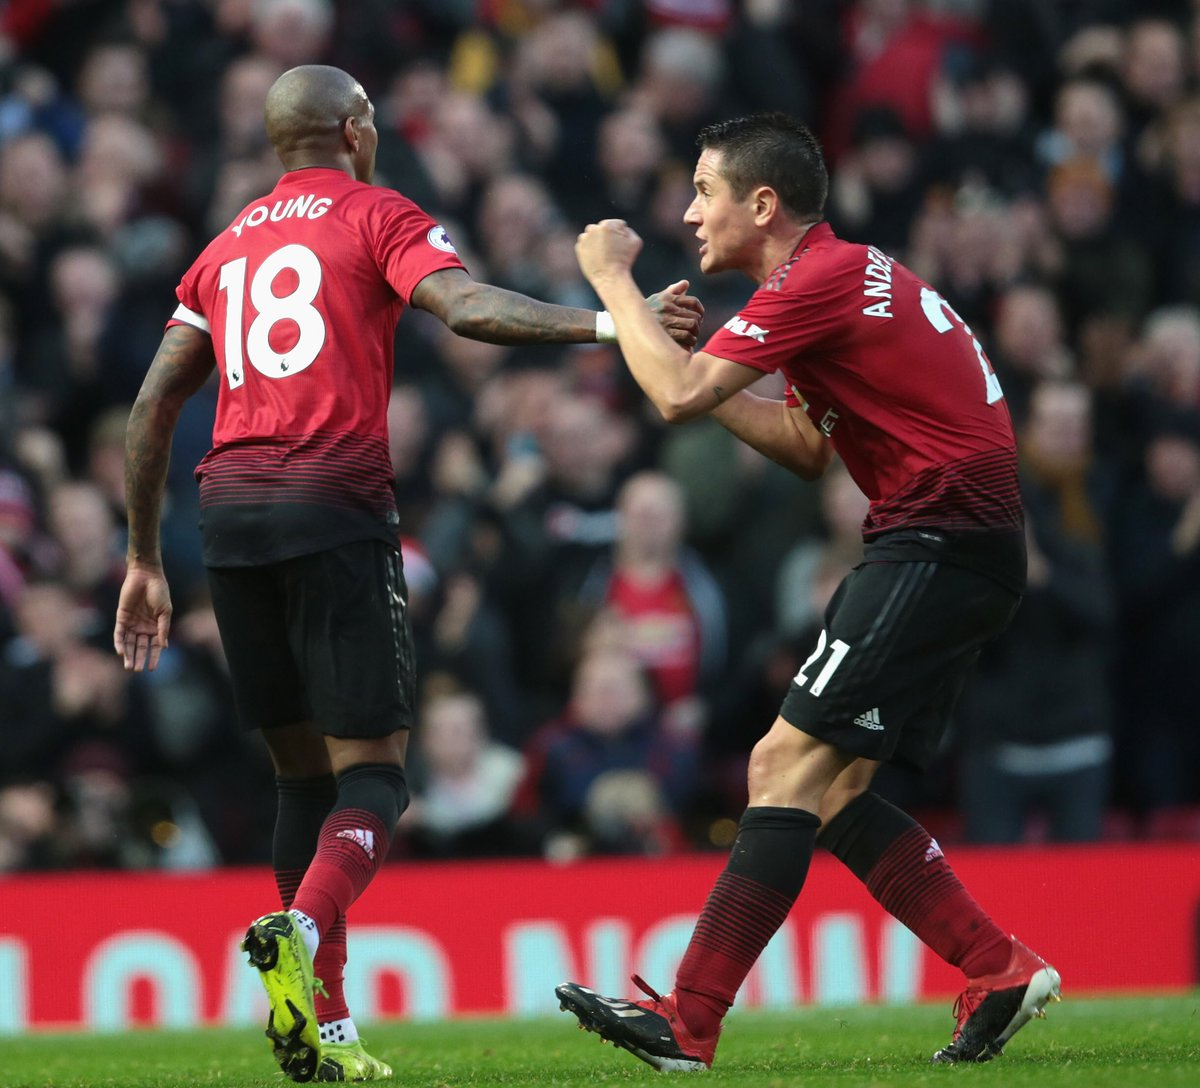 When you are so excited with the goals and your team performance and @youngy18 ignores you 😏 🤣🤣🤣. Well done lads 🔴